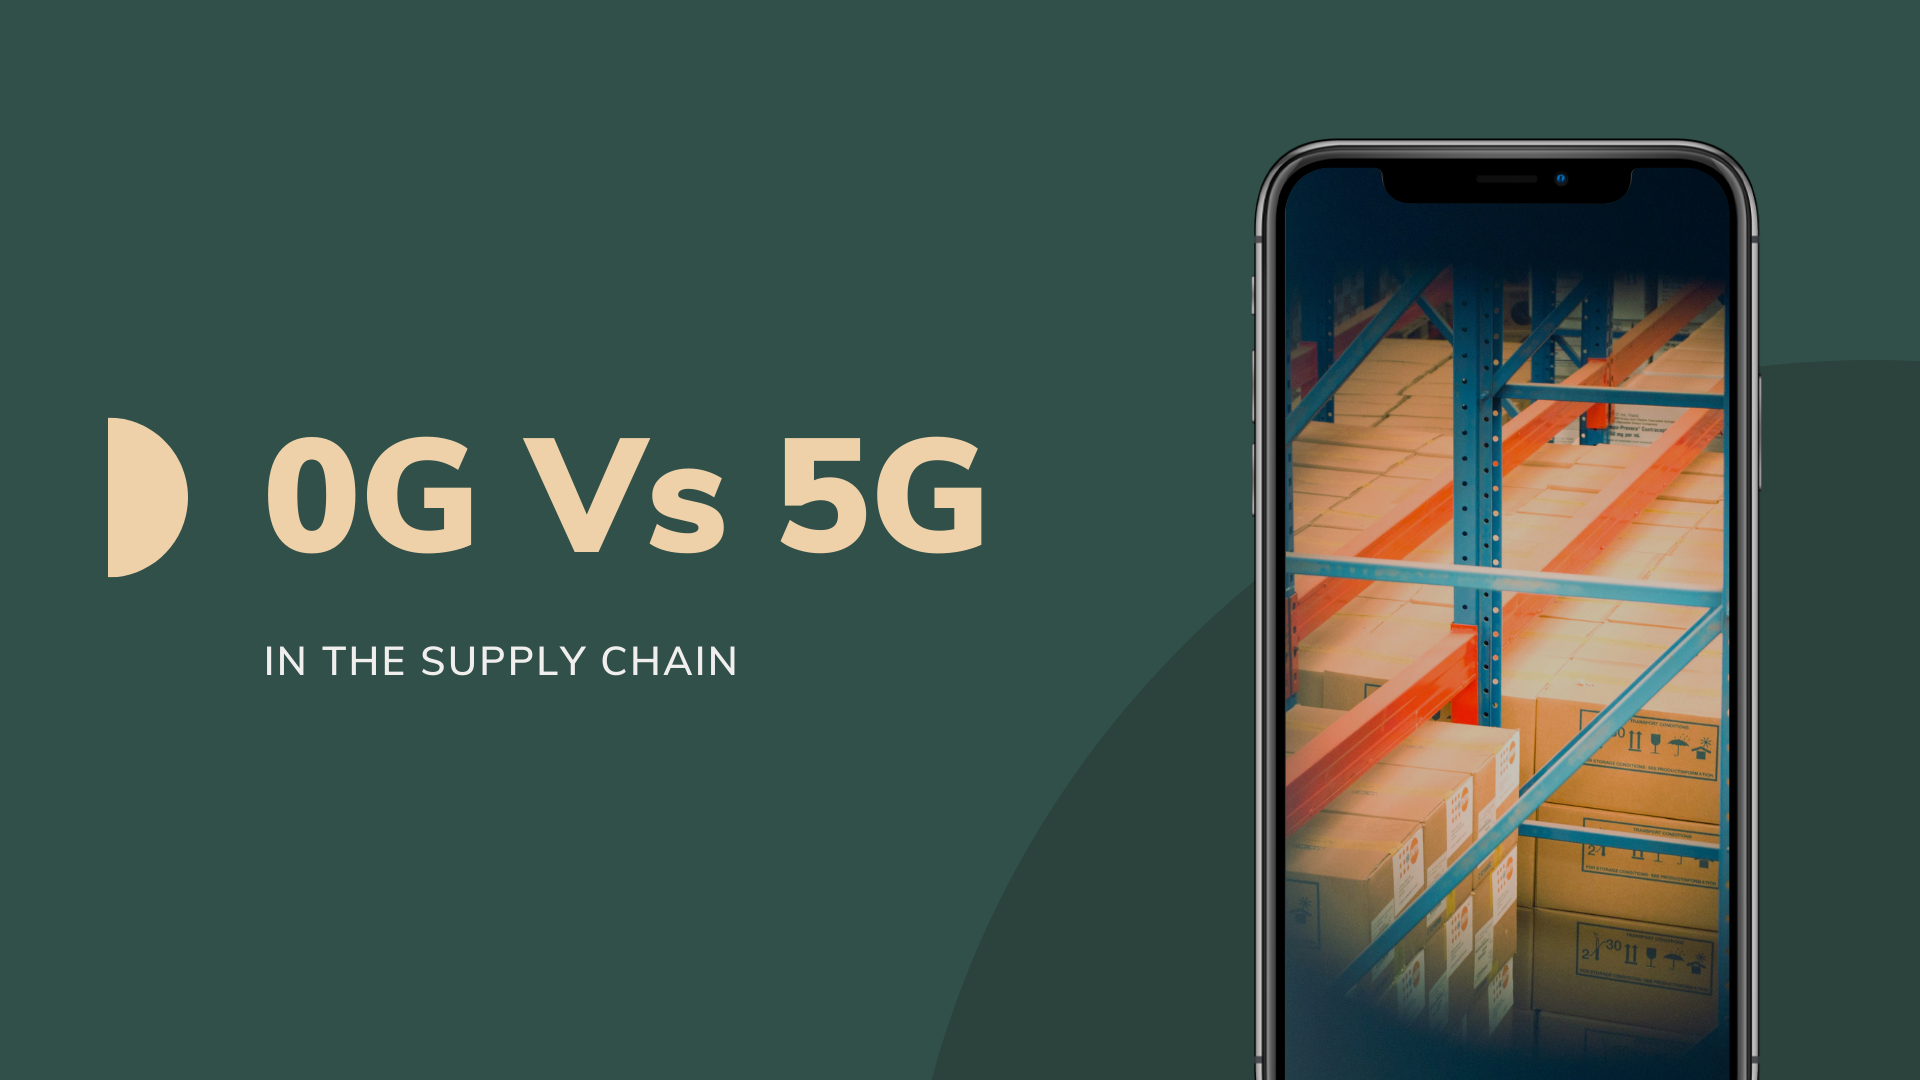 0G Vs 5G In The Supply Chain